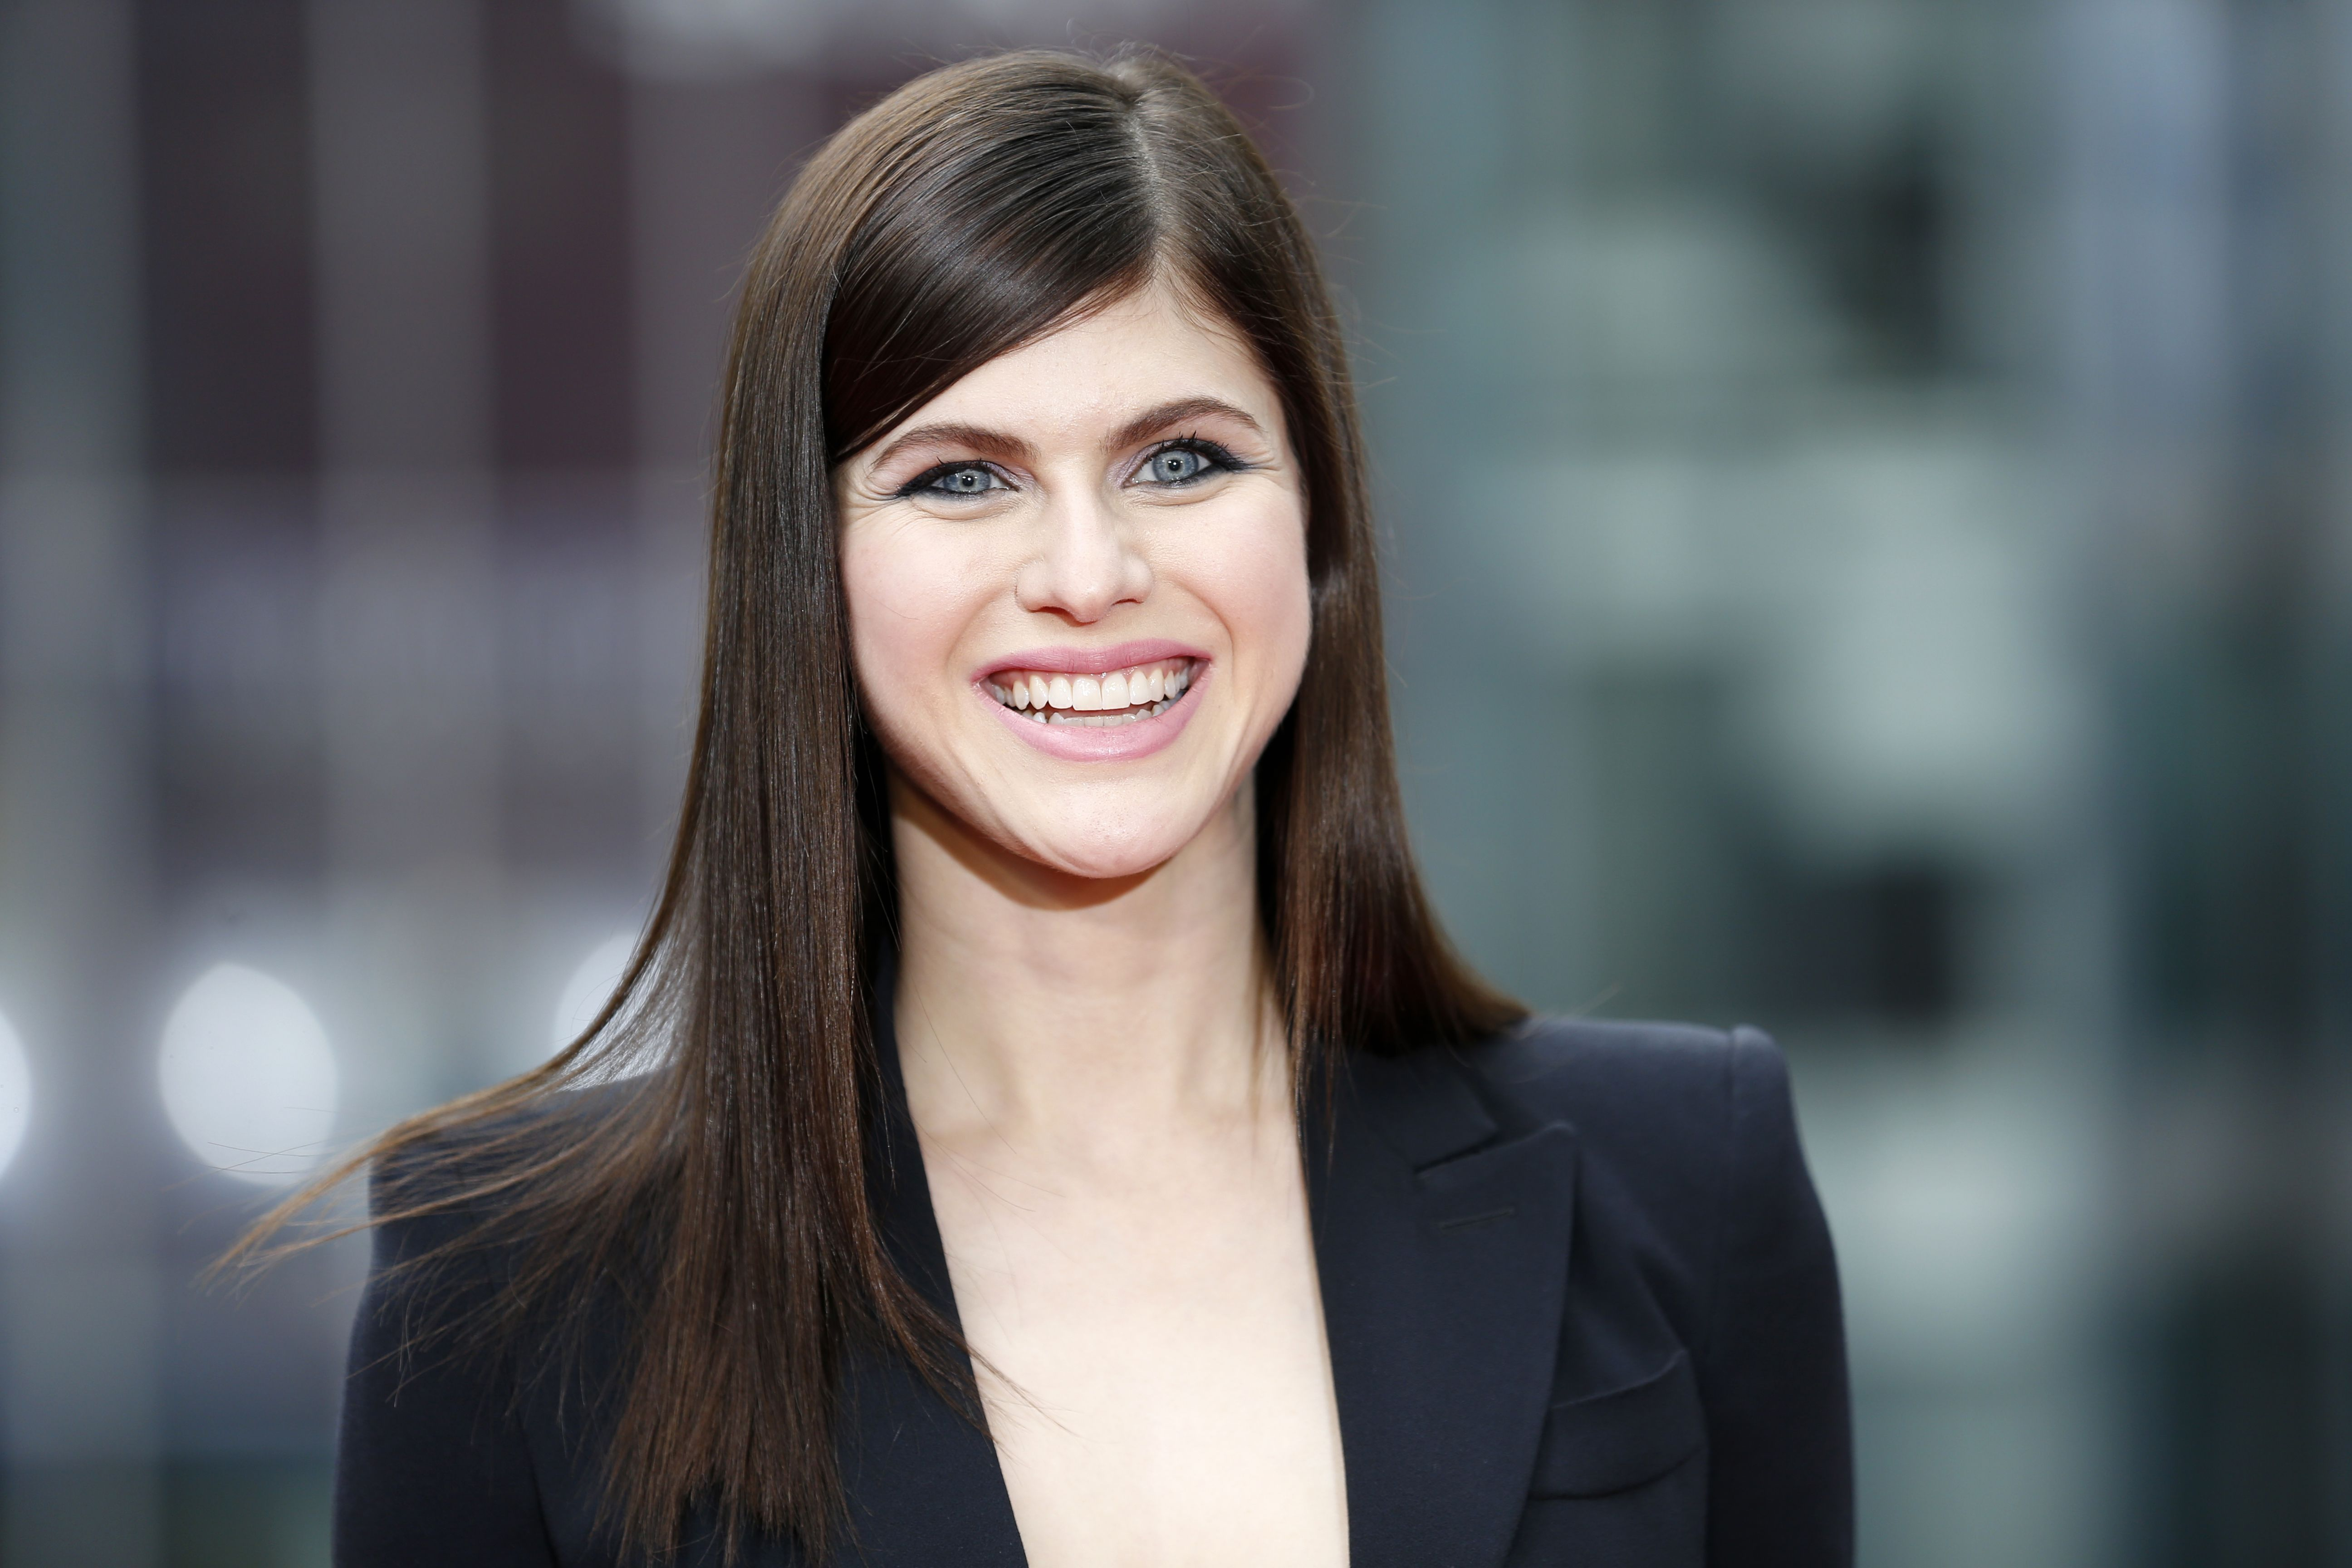 Fotos Alexandra Daddario nudes (72 foto and video), Sexy, Bikini, Twitter, butt 2006